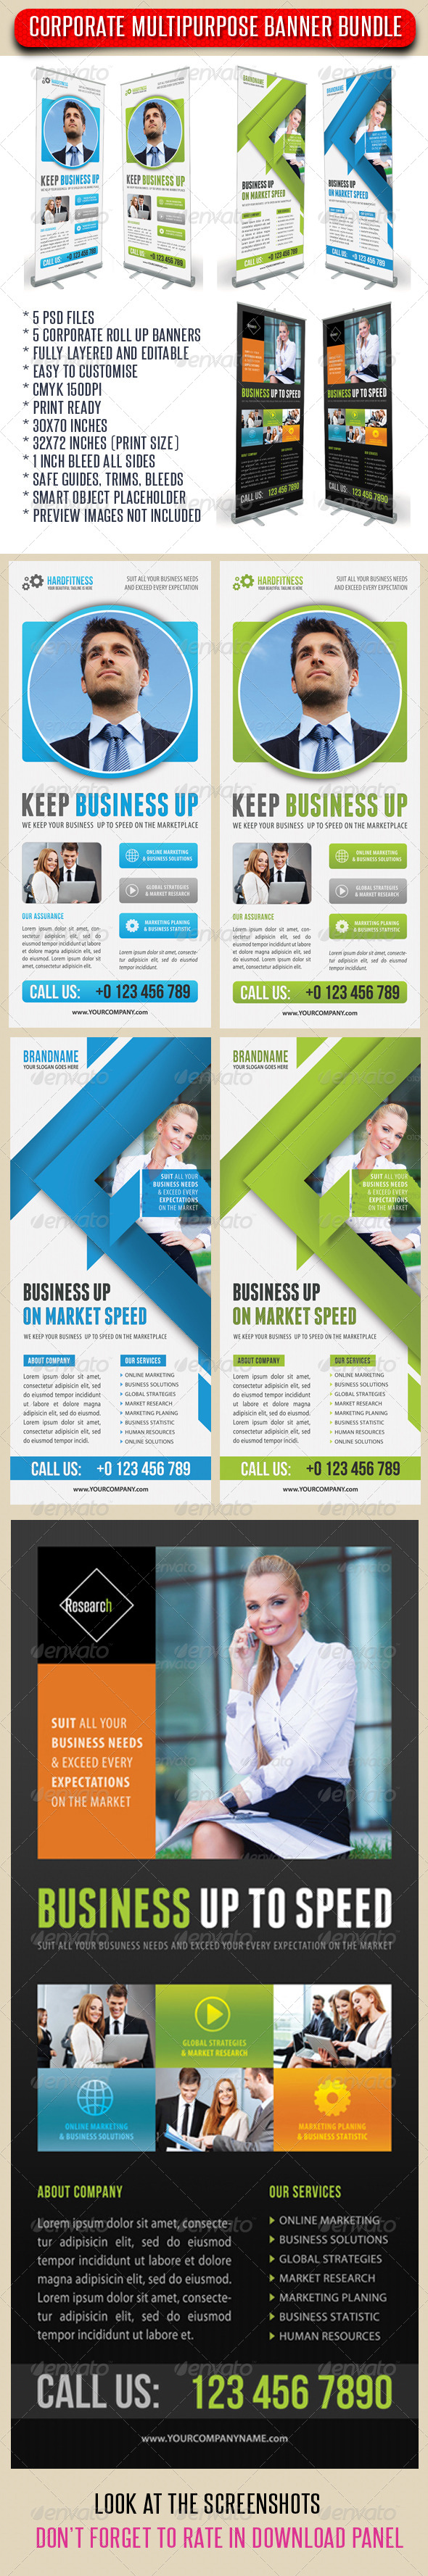 3 in 1 Corporate Rollup Banner Bundle 05 - Signage Print Templates